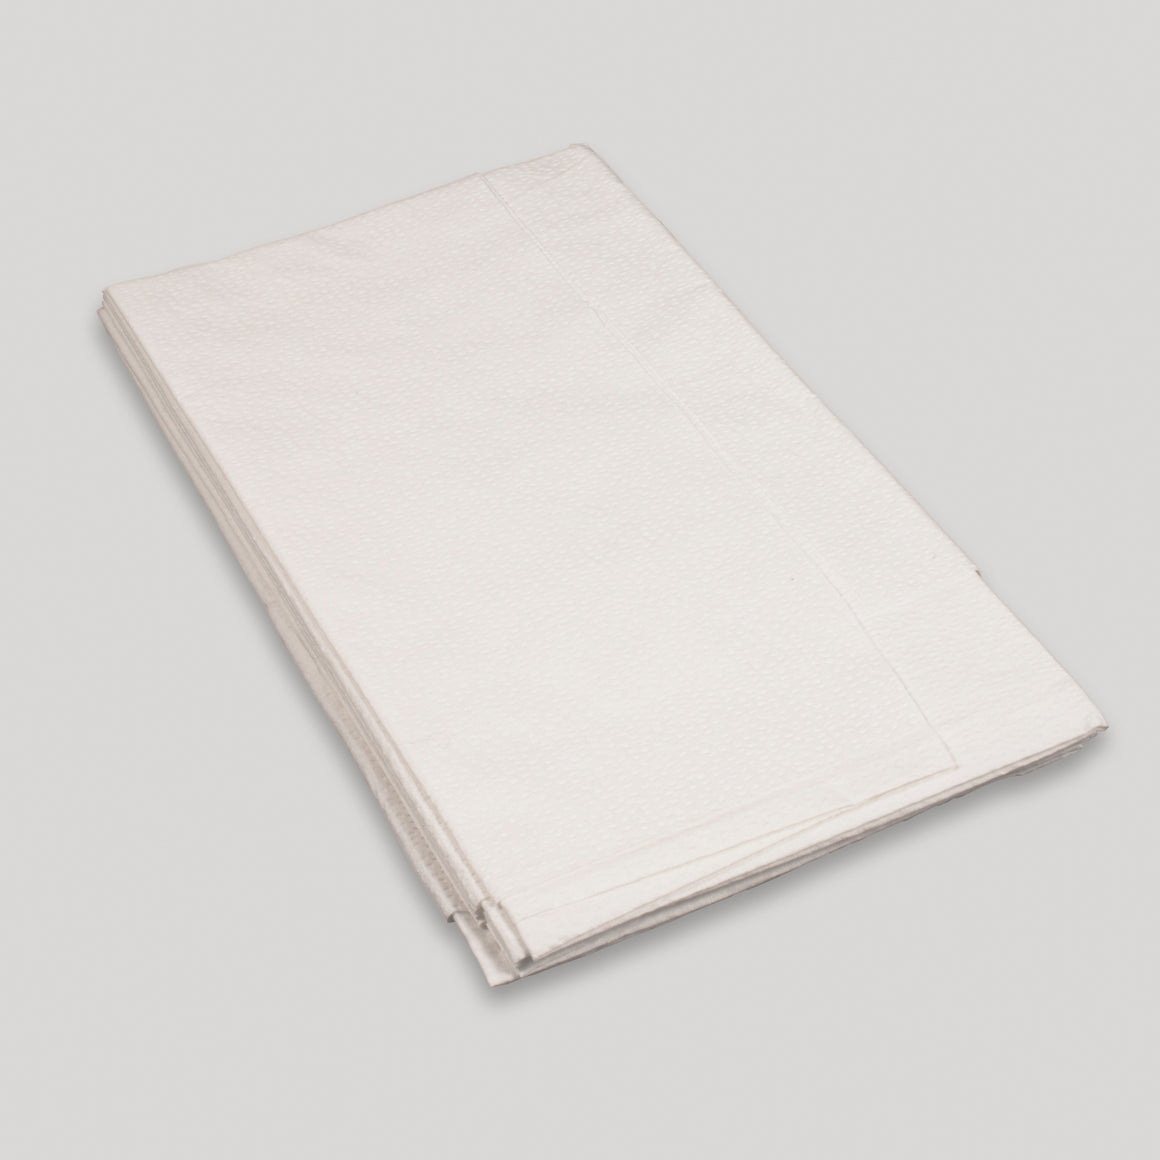 Dynarex #8121 Exam Drape Sheets 40×48 – 100 per case